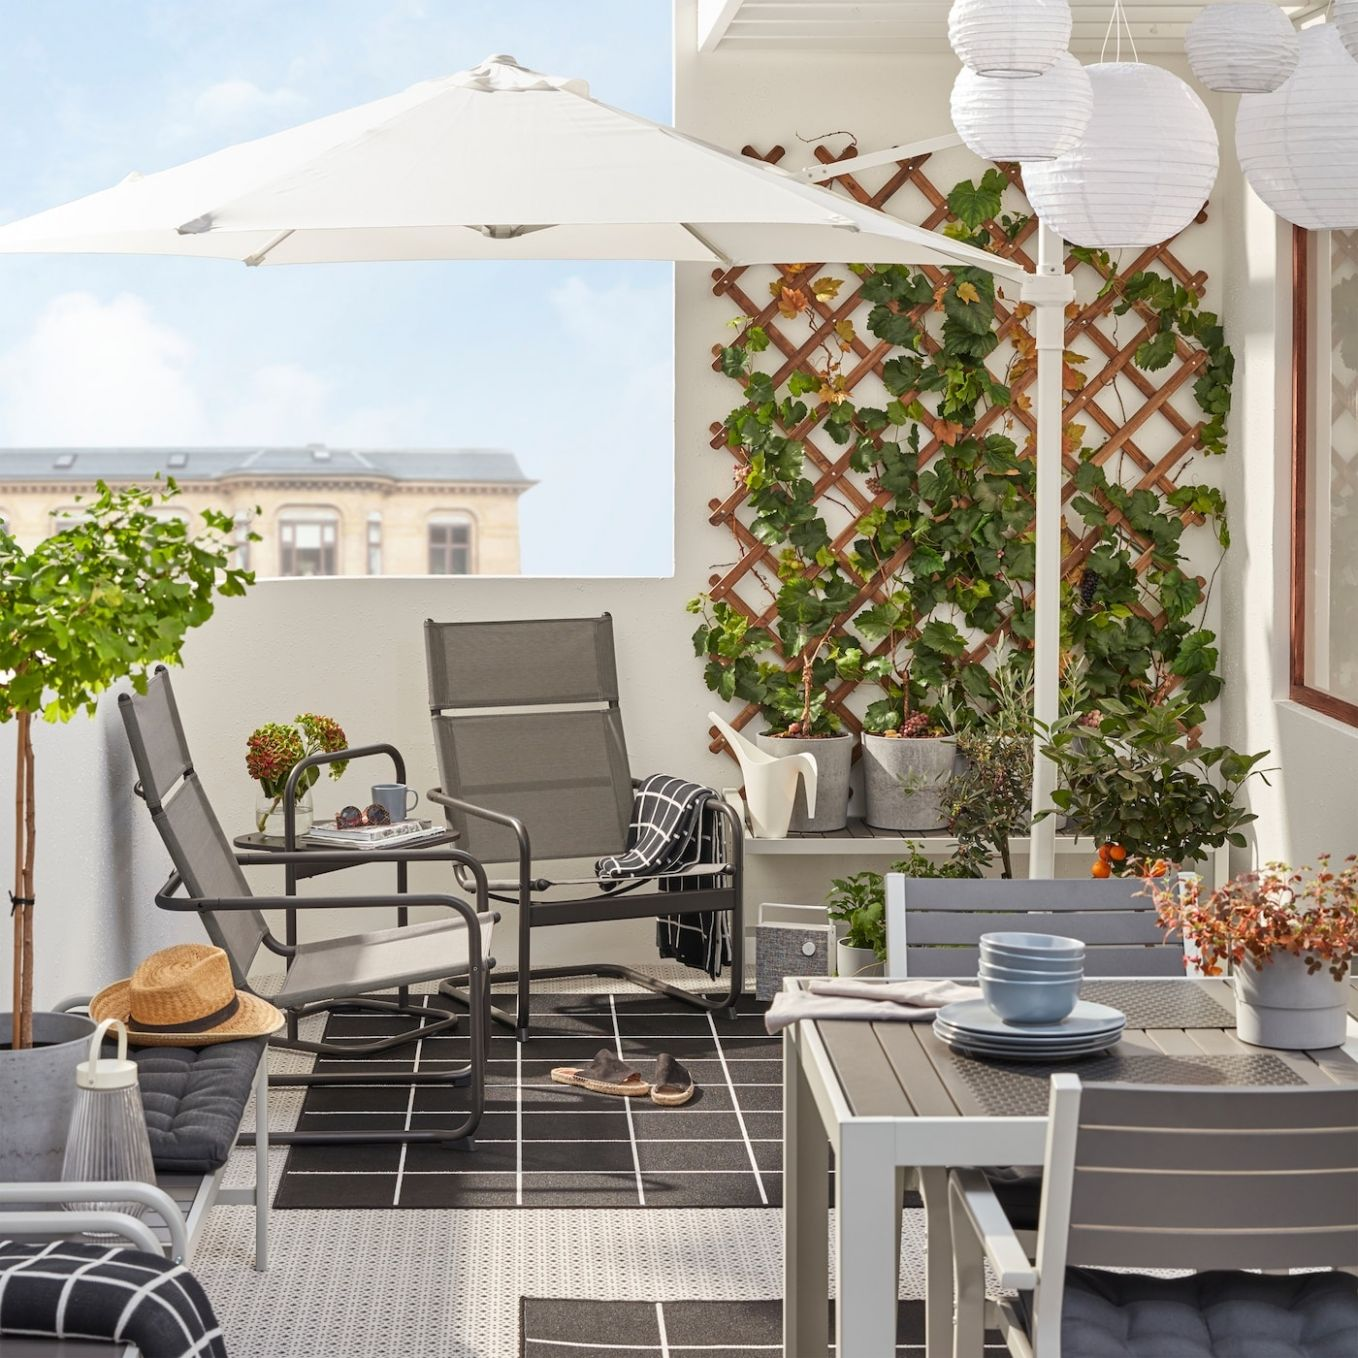 Inspiration for small outdoor spaces - Balcony ideas - IKEA